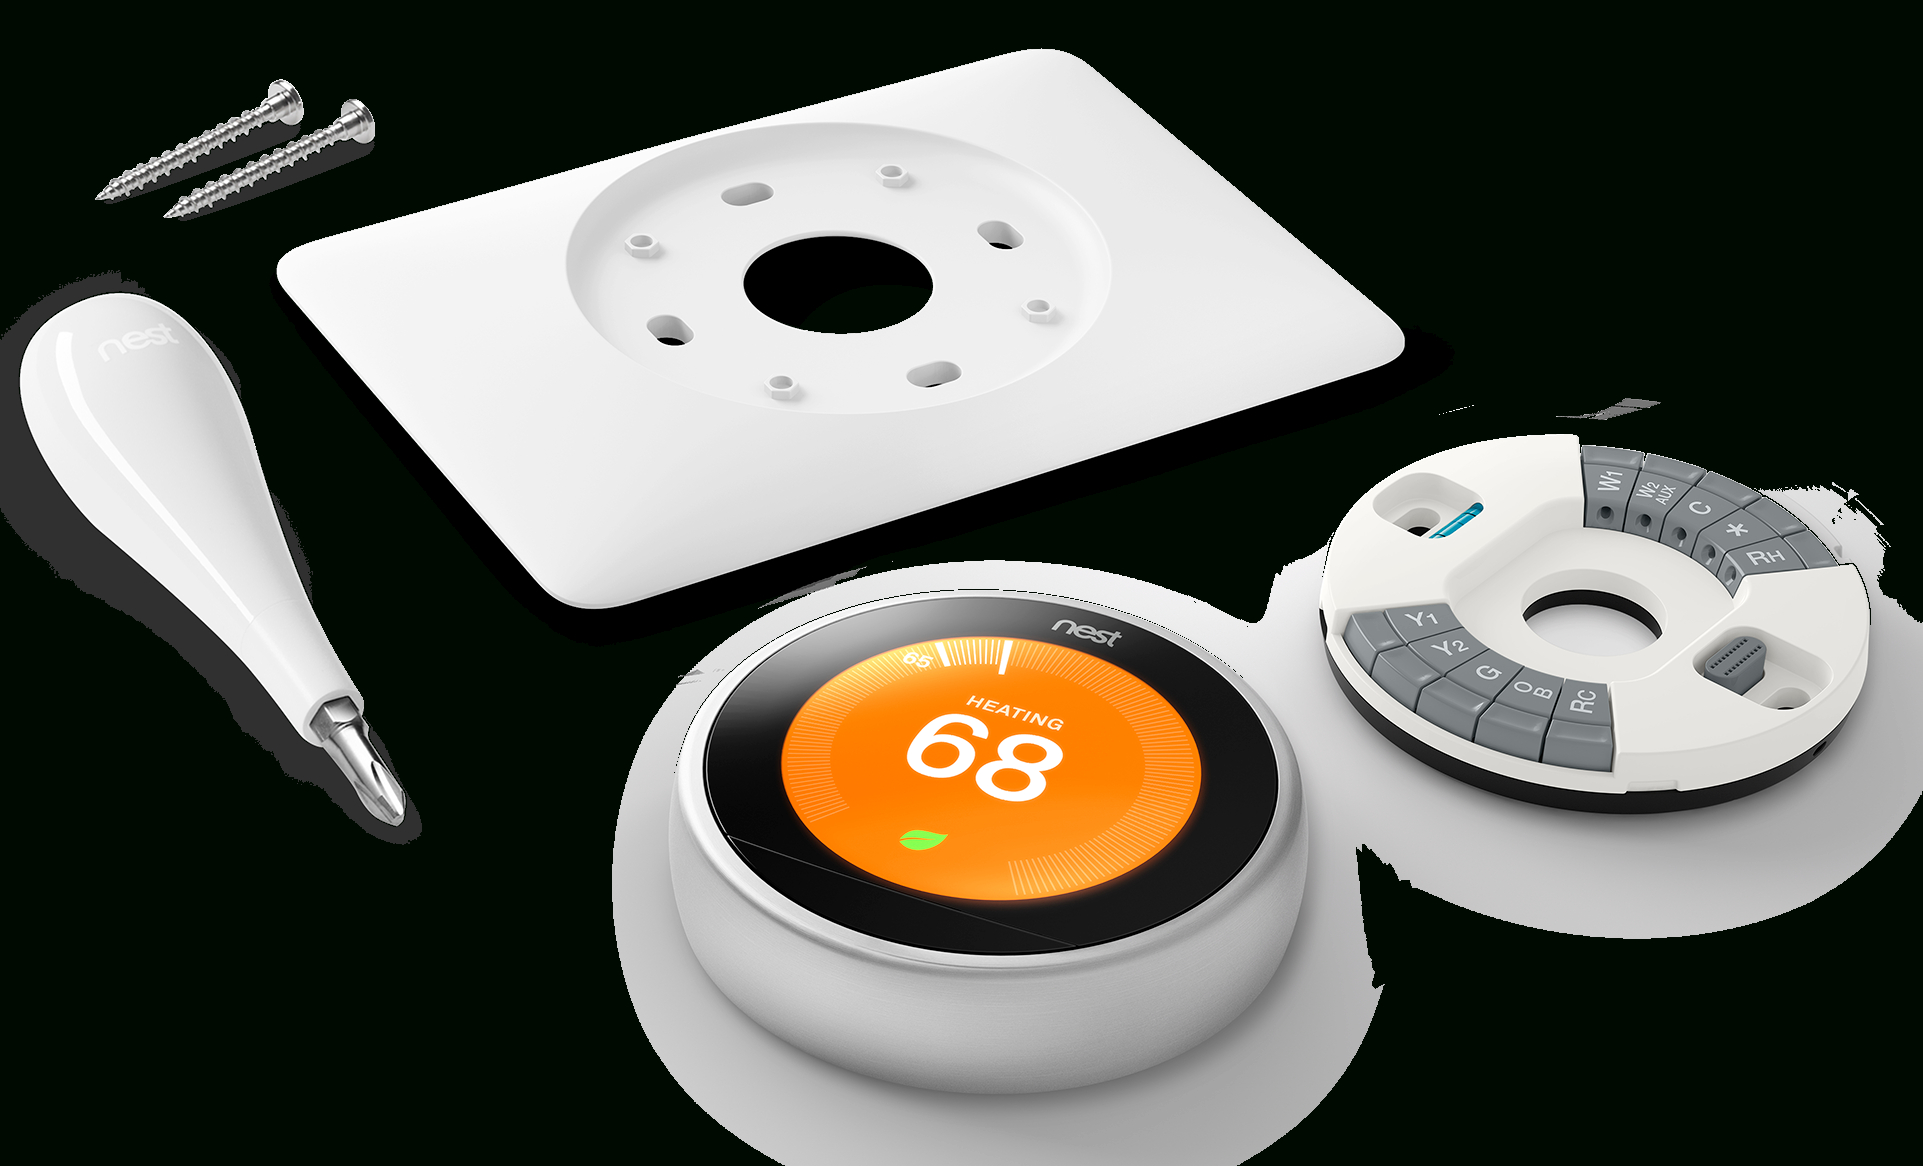 How To Install Your Nest Thermostat - Nest 3Rd Gen Wiring Diagram